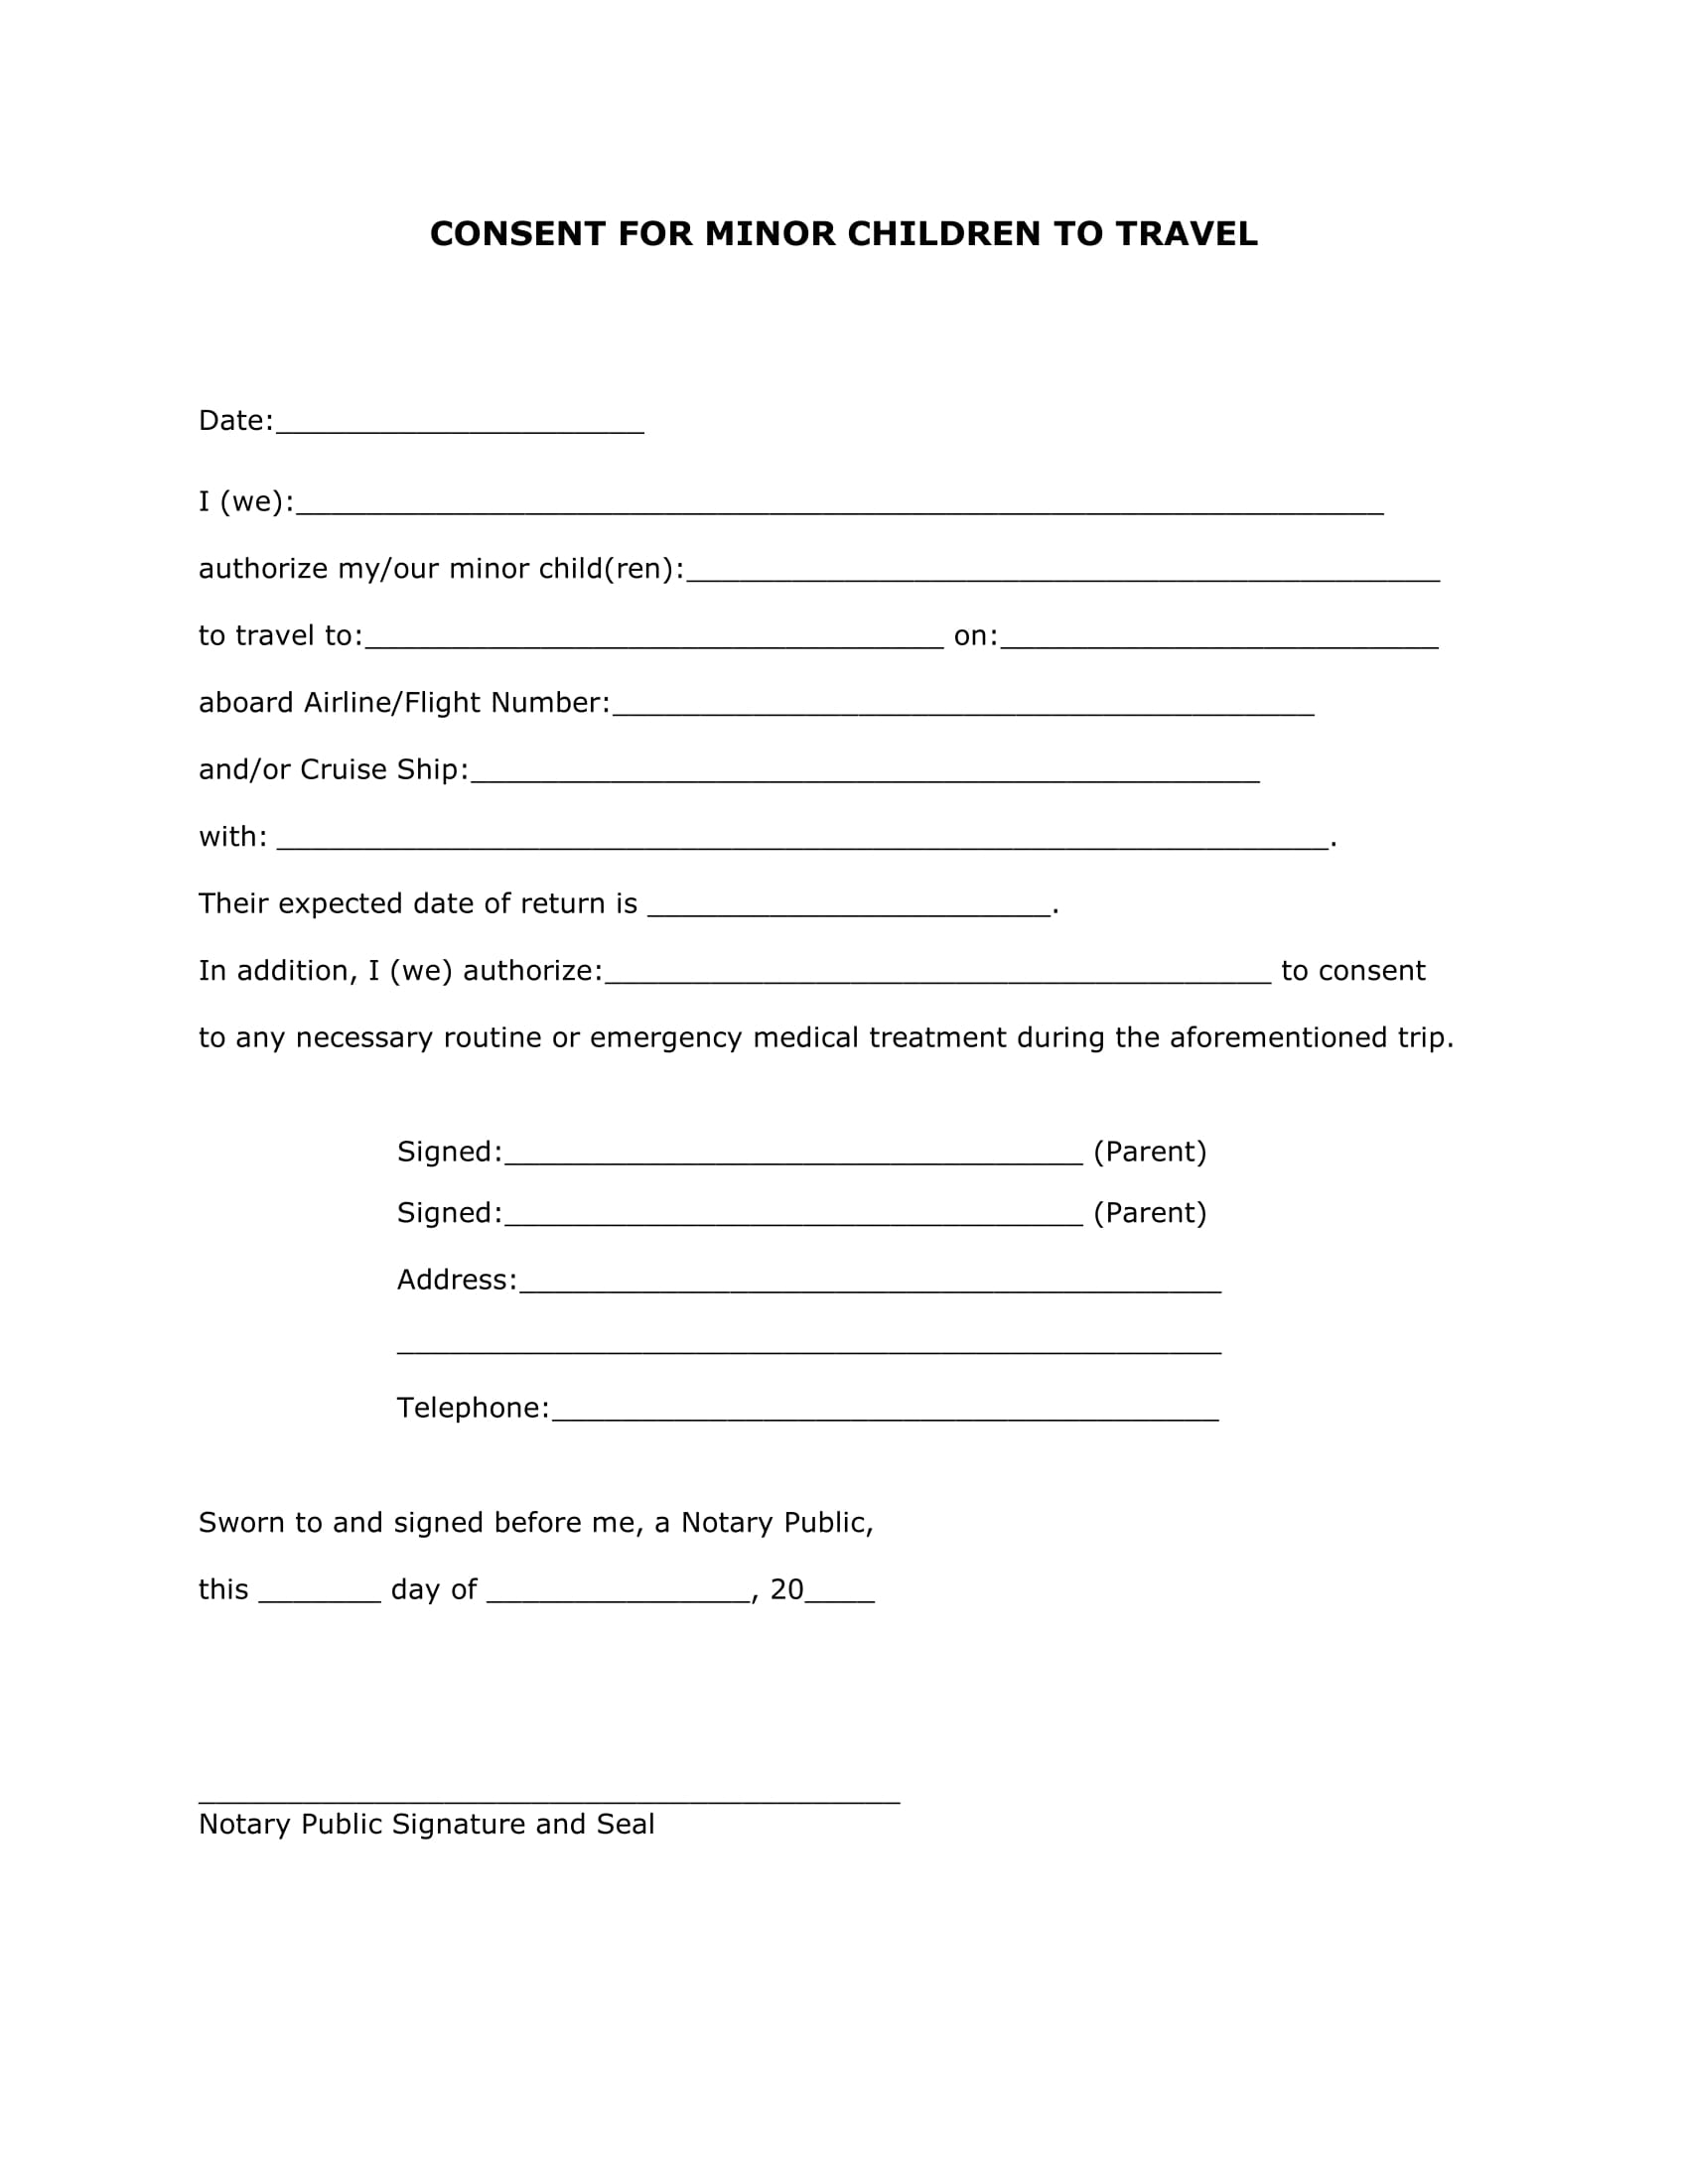 Passport Parental Consent Form Ds 3053 Eforms Free Fillable Parent Consent  Form Dmv Fill Out Print Download Online Forms Medical Release Form For  Minor ...